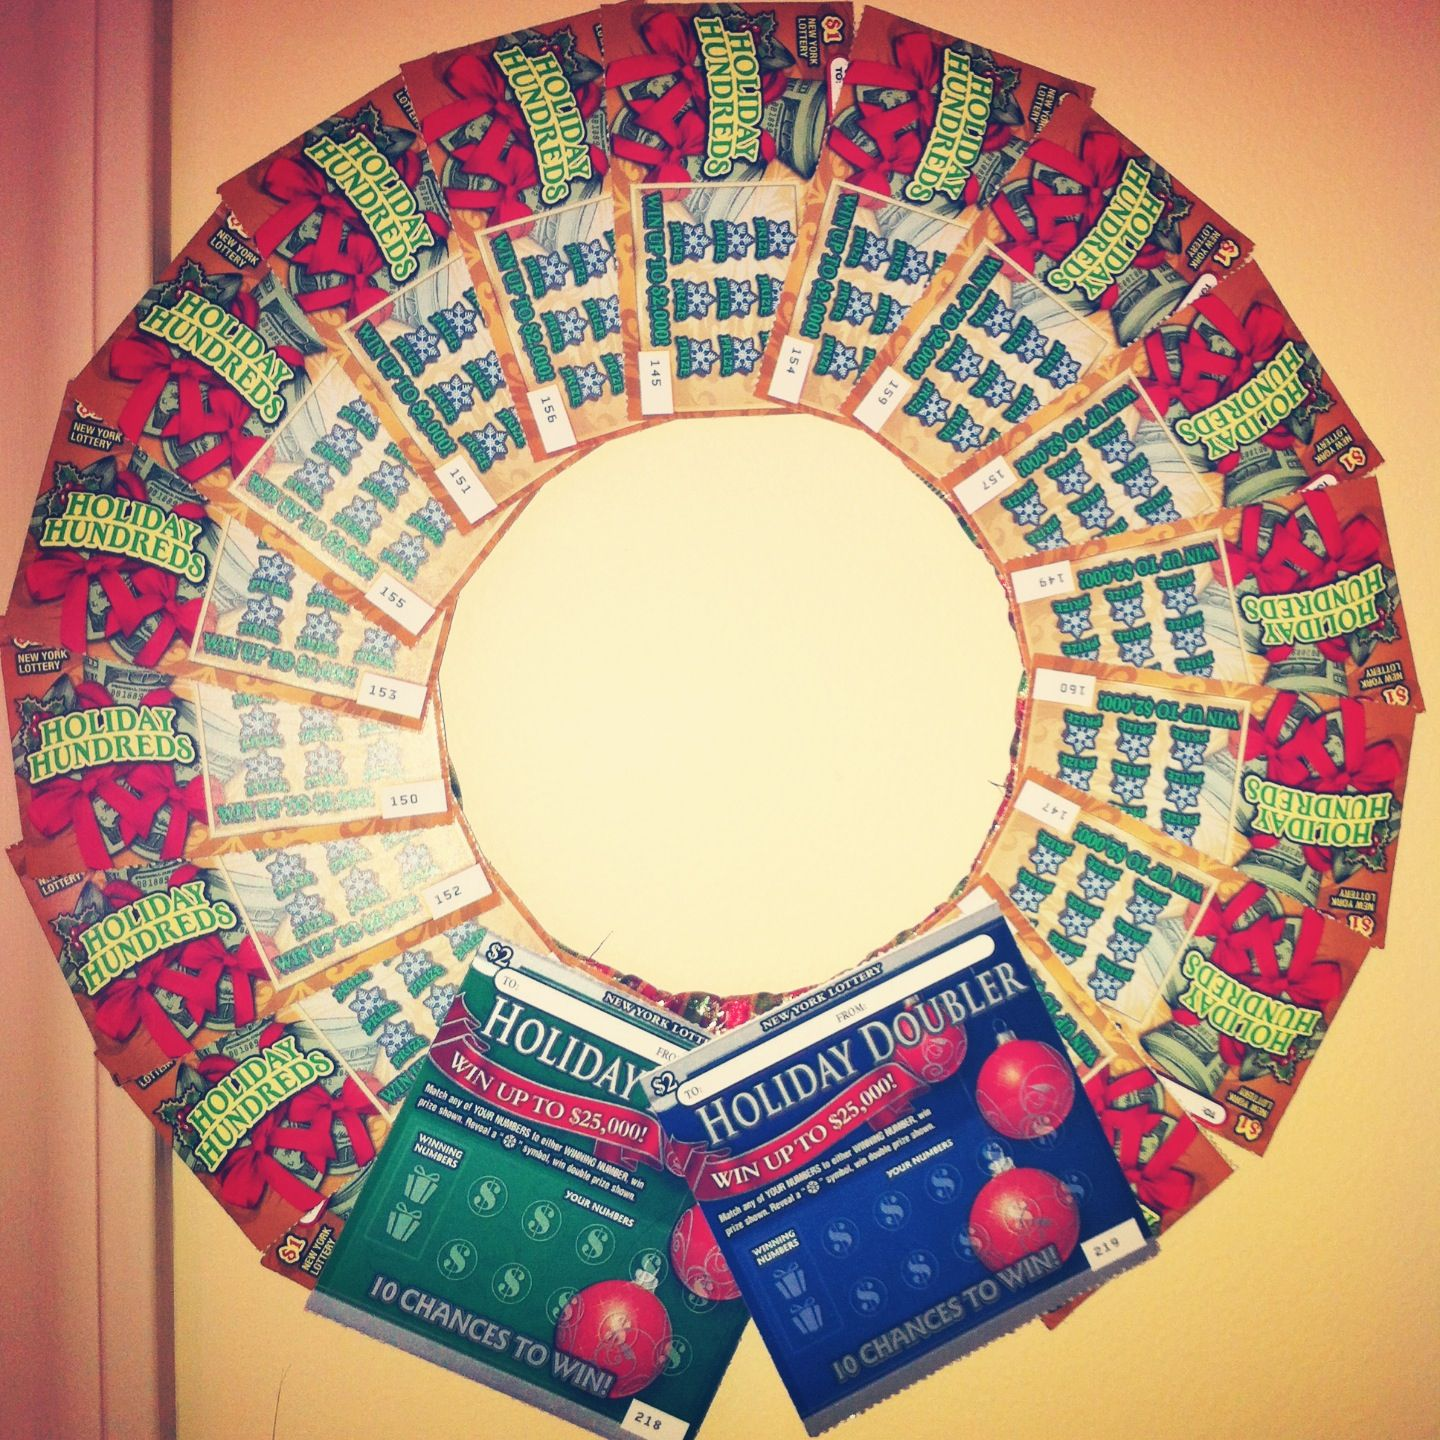 lottery scratch off christmas wreath for dirty santa gift exchange gift ideas pinterest. Black Bedroom Furniture Sets. Home Design Ideas